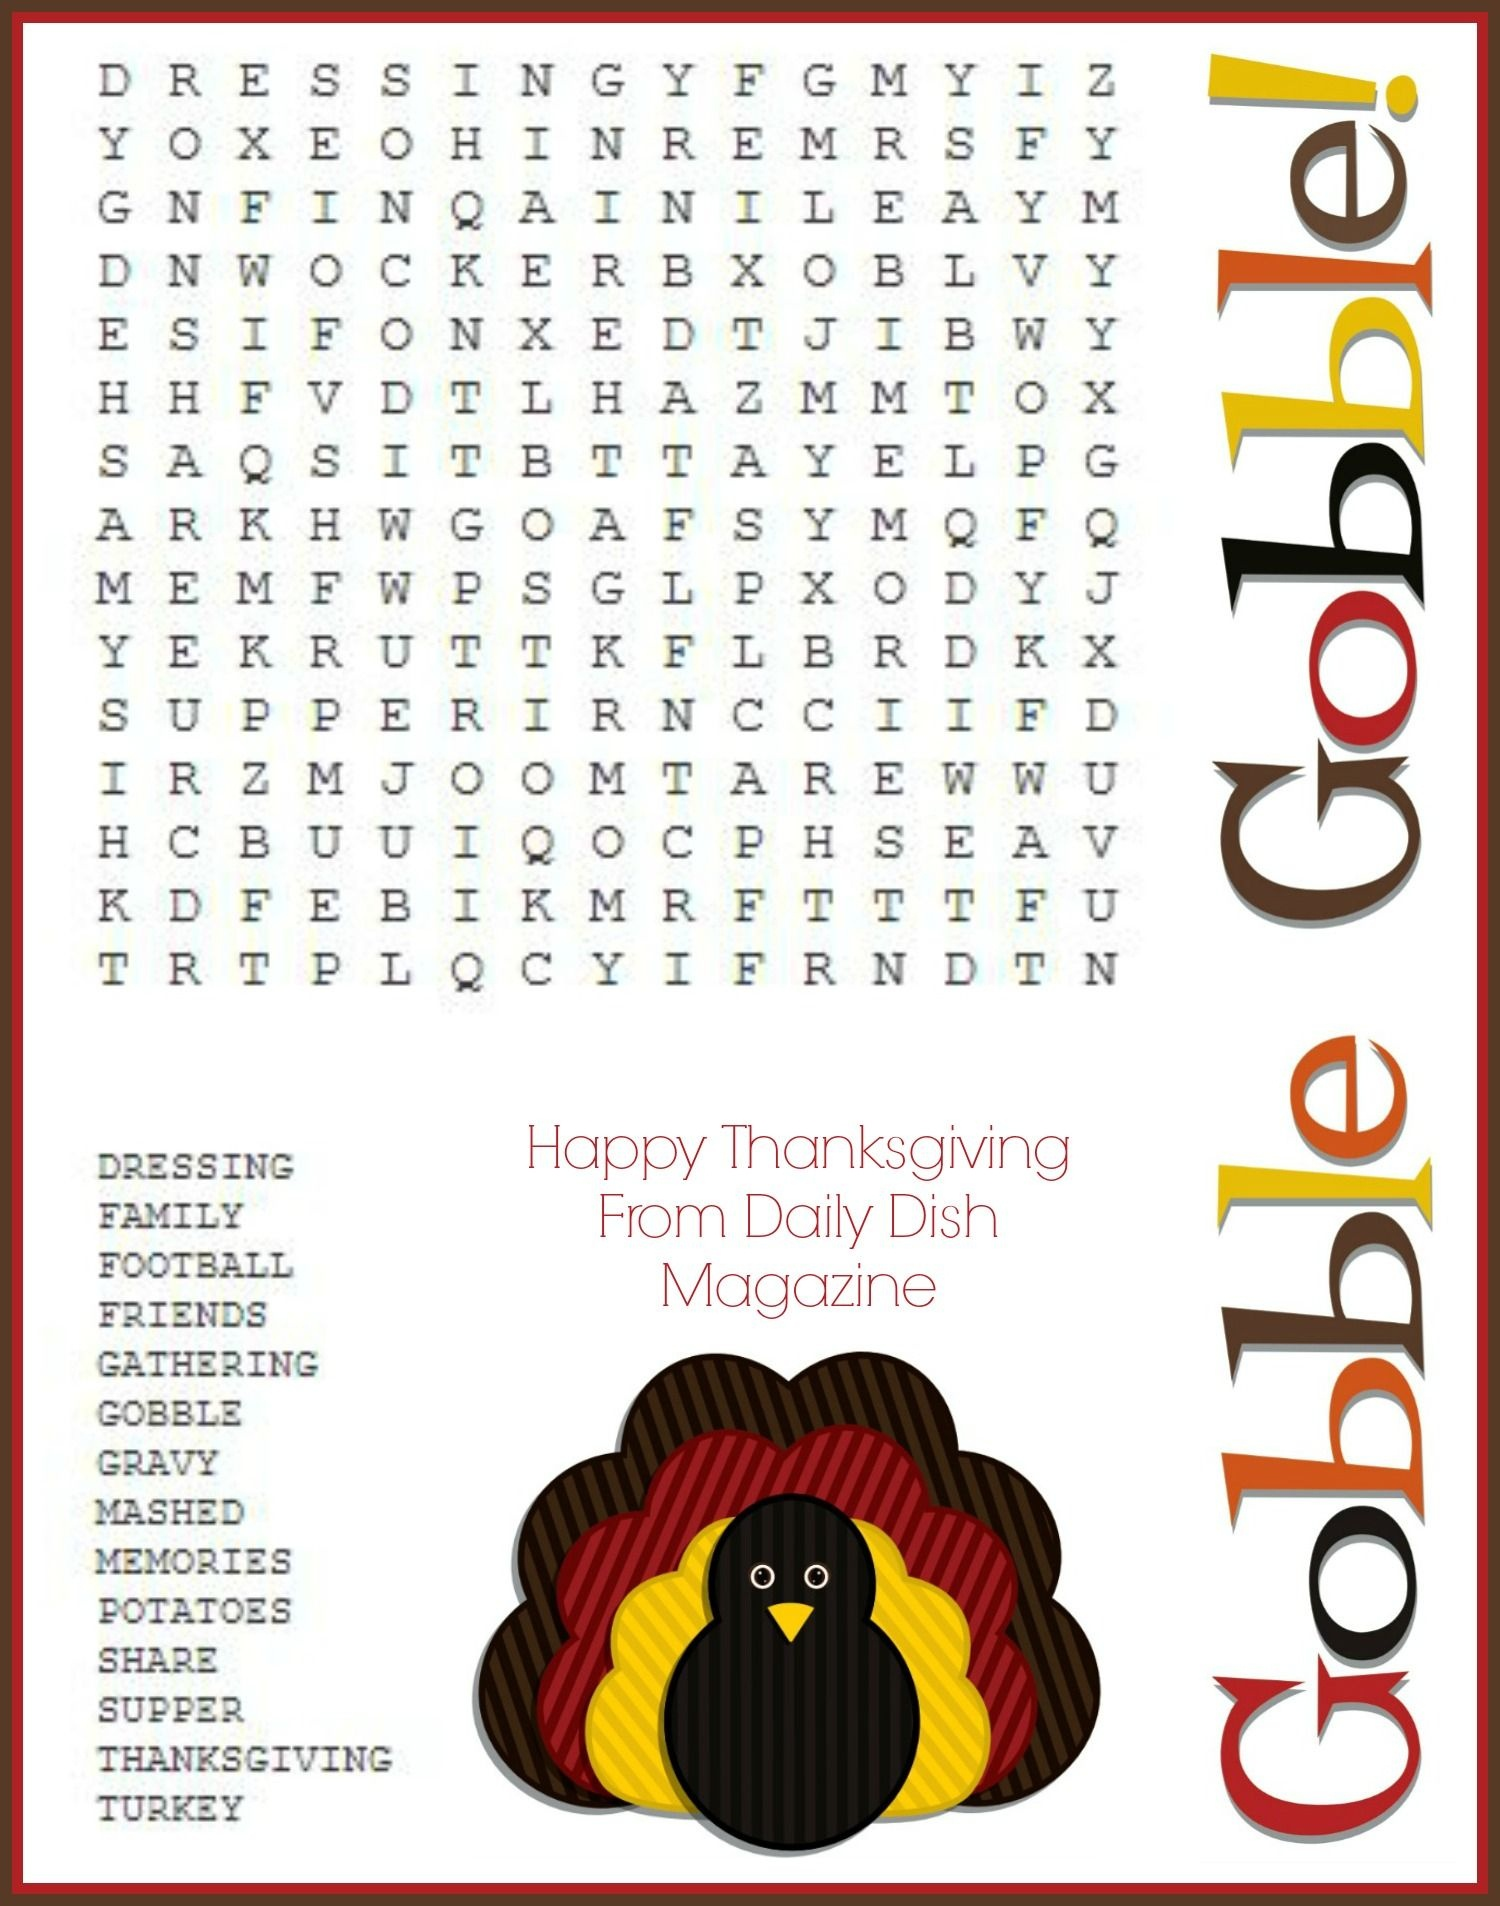 Free Thanksgiving Puzzles ~ Word Search And Maze Printable | Crafty - Free Printable Thanksgiving Games For Adults